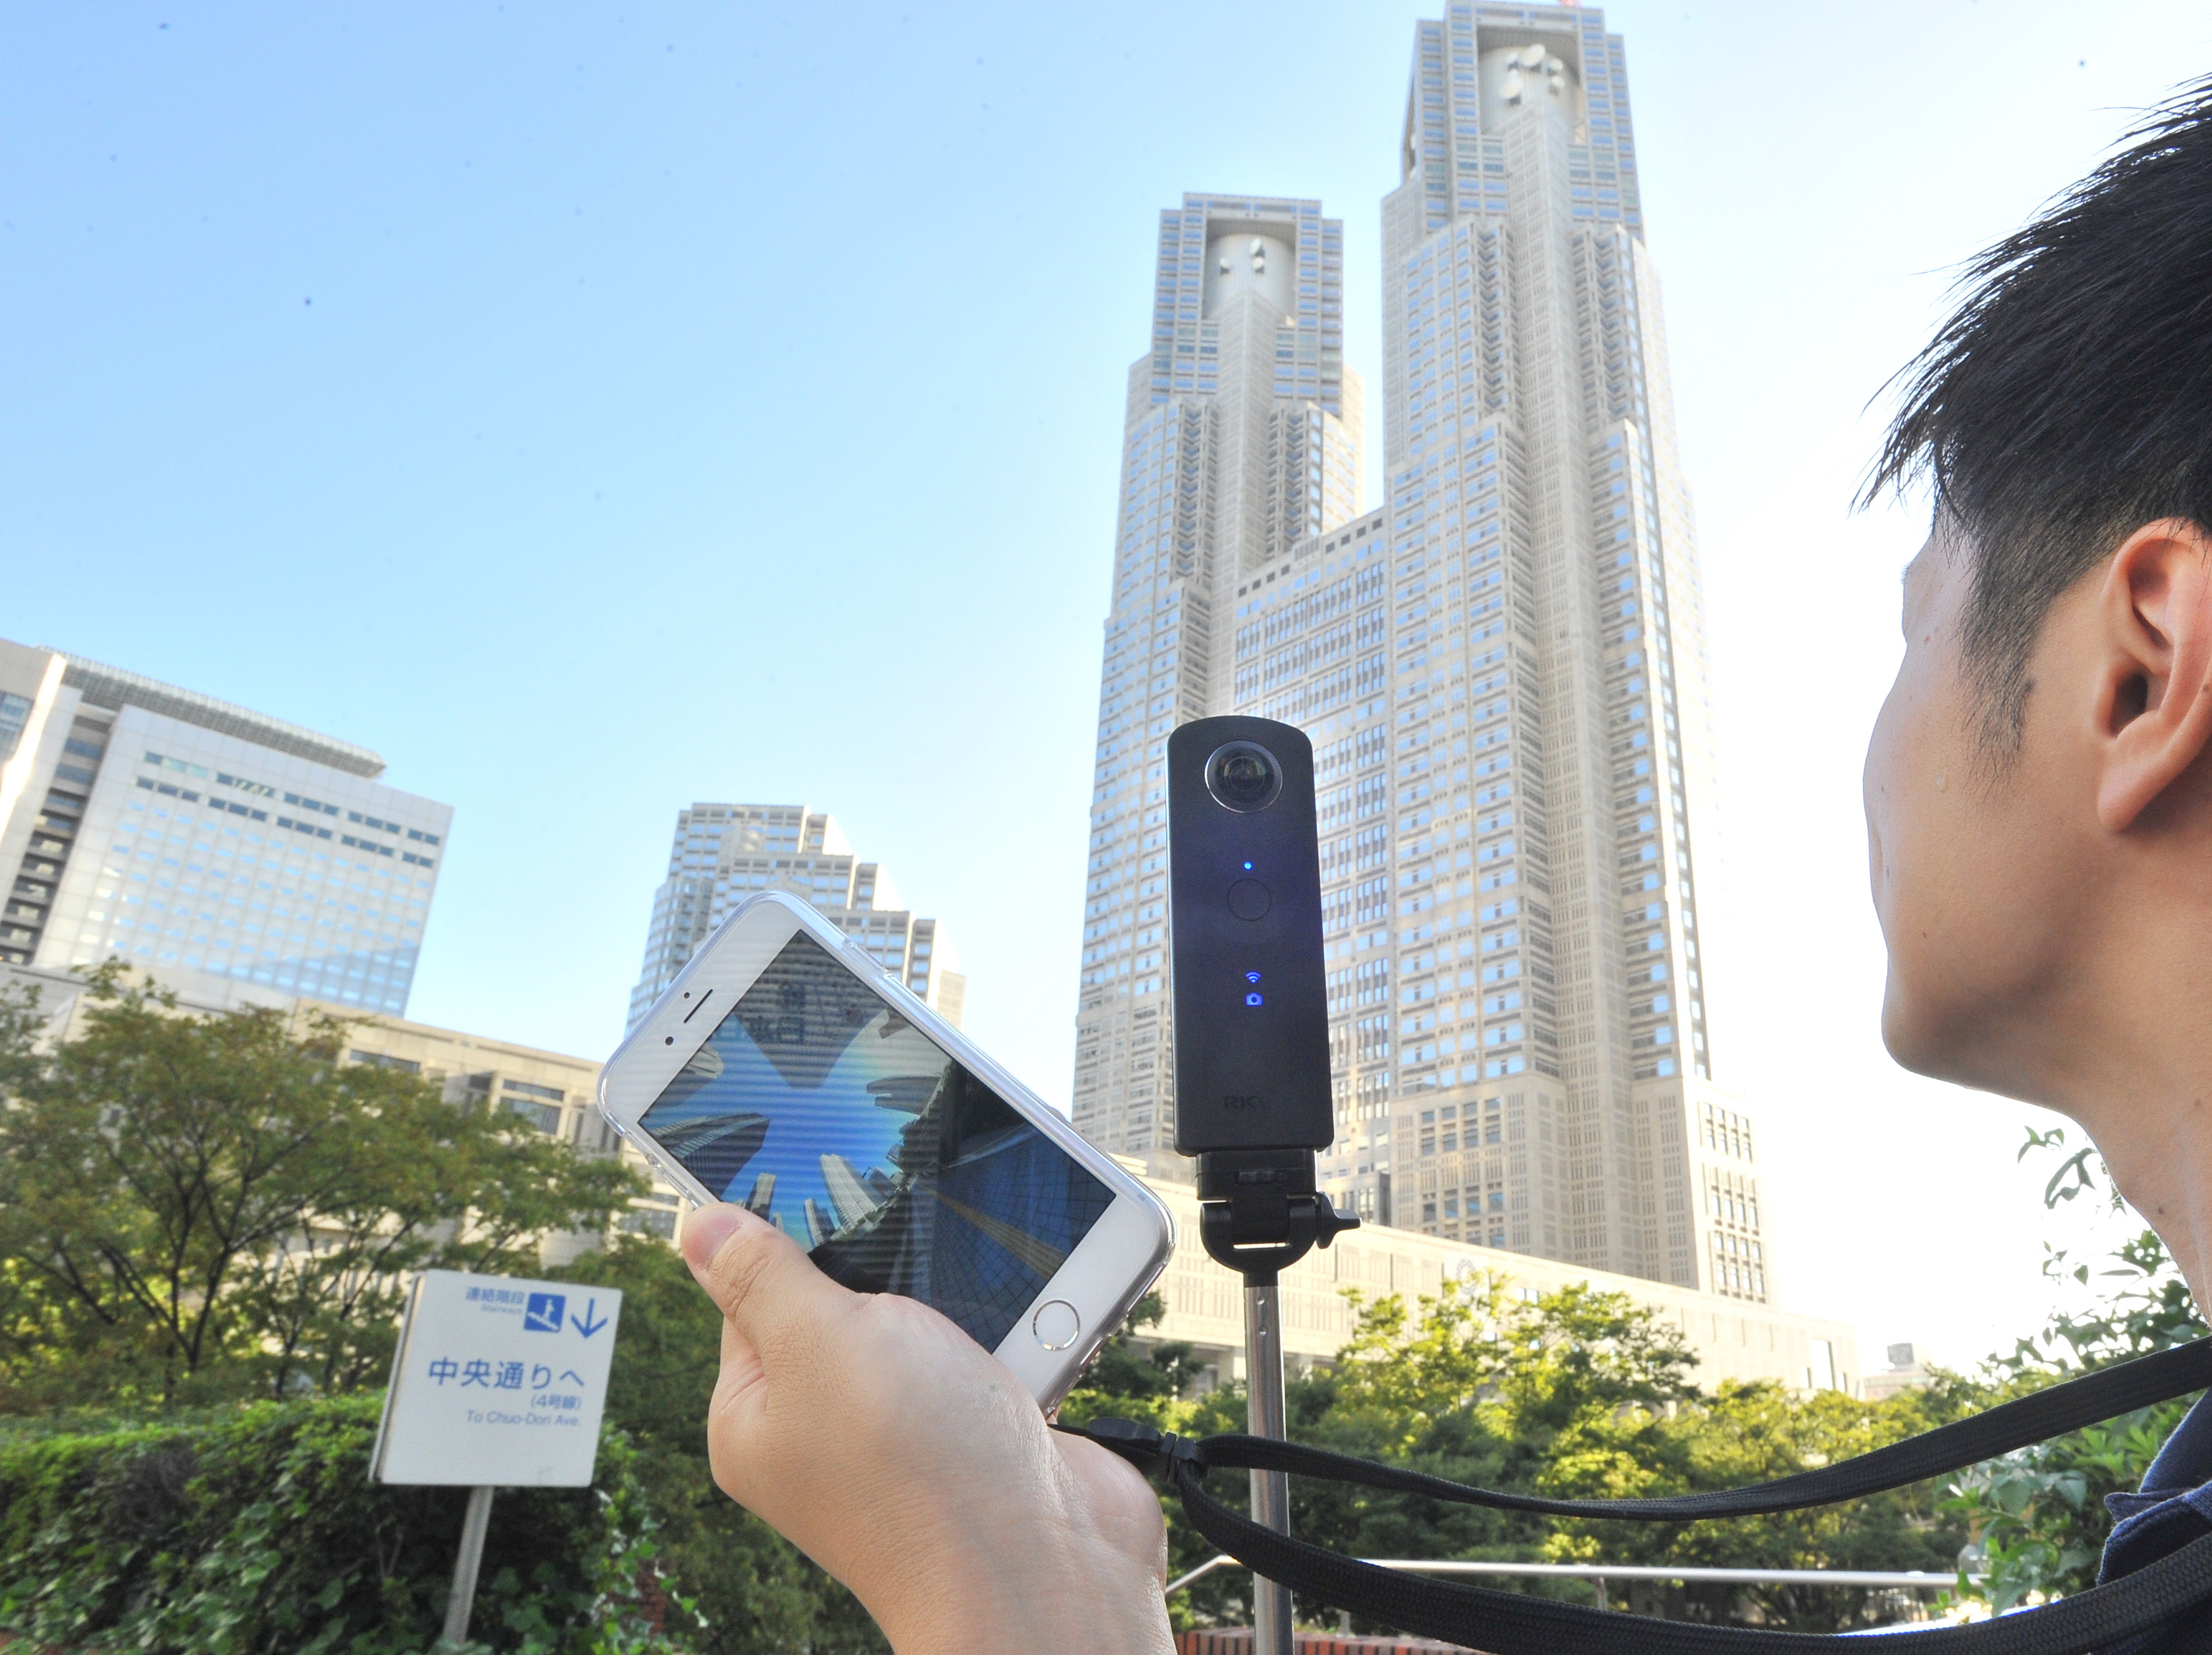 A Ricoh Theta S camera (mounted on stick) is used to take 360-degree photos near the Tokyo Metropolitan Government building in Shinjuku Ward on Aug. 31. The image can be transmitted to a smartphone for viewing. | YOSHIAKI MIURA